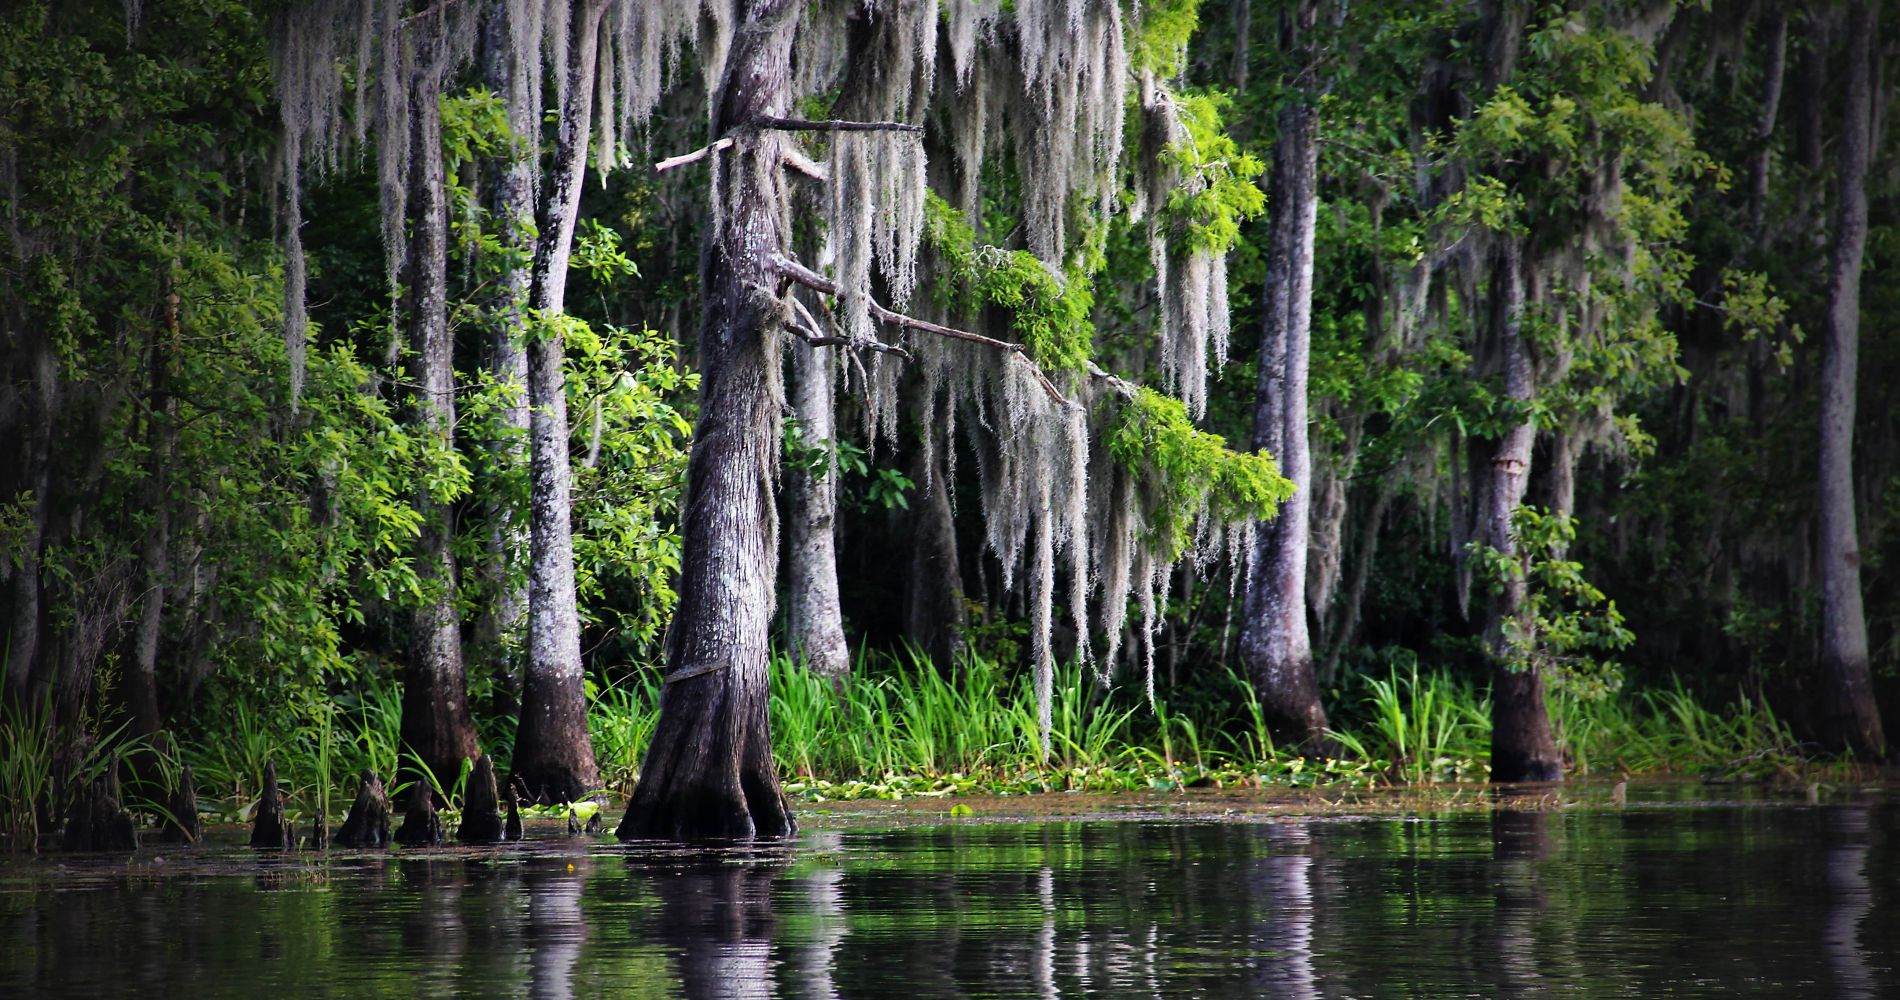 Swamp Tour in the Lands of Louisiana